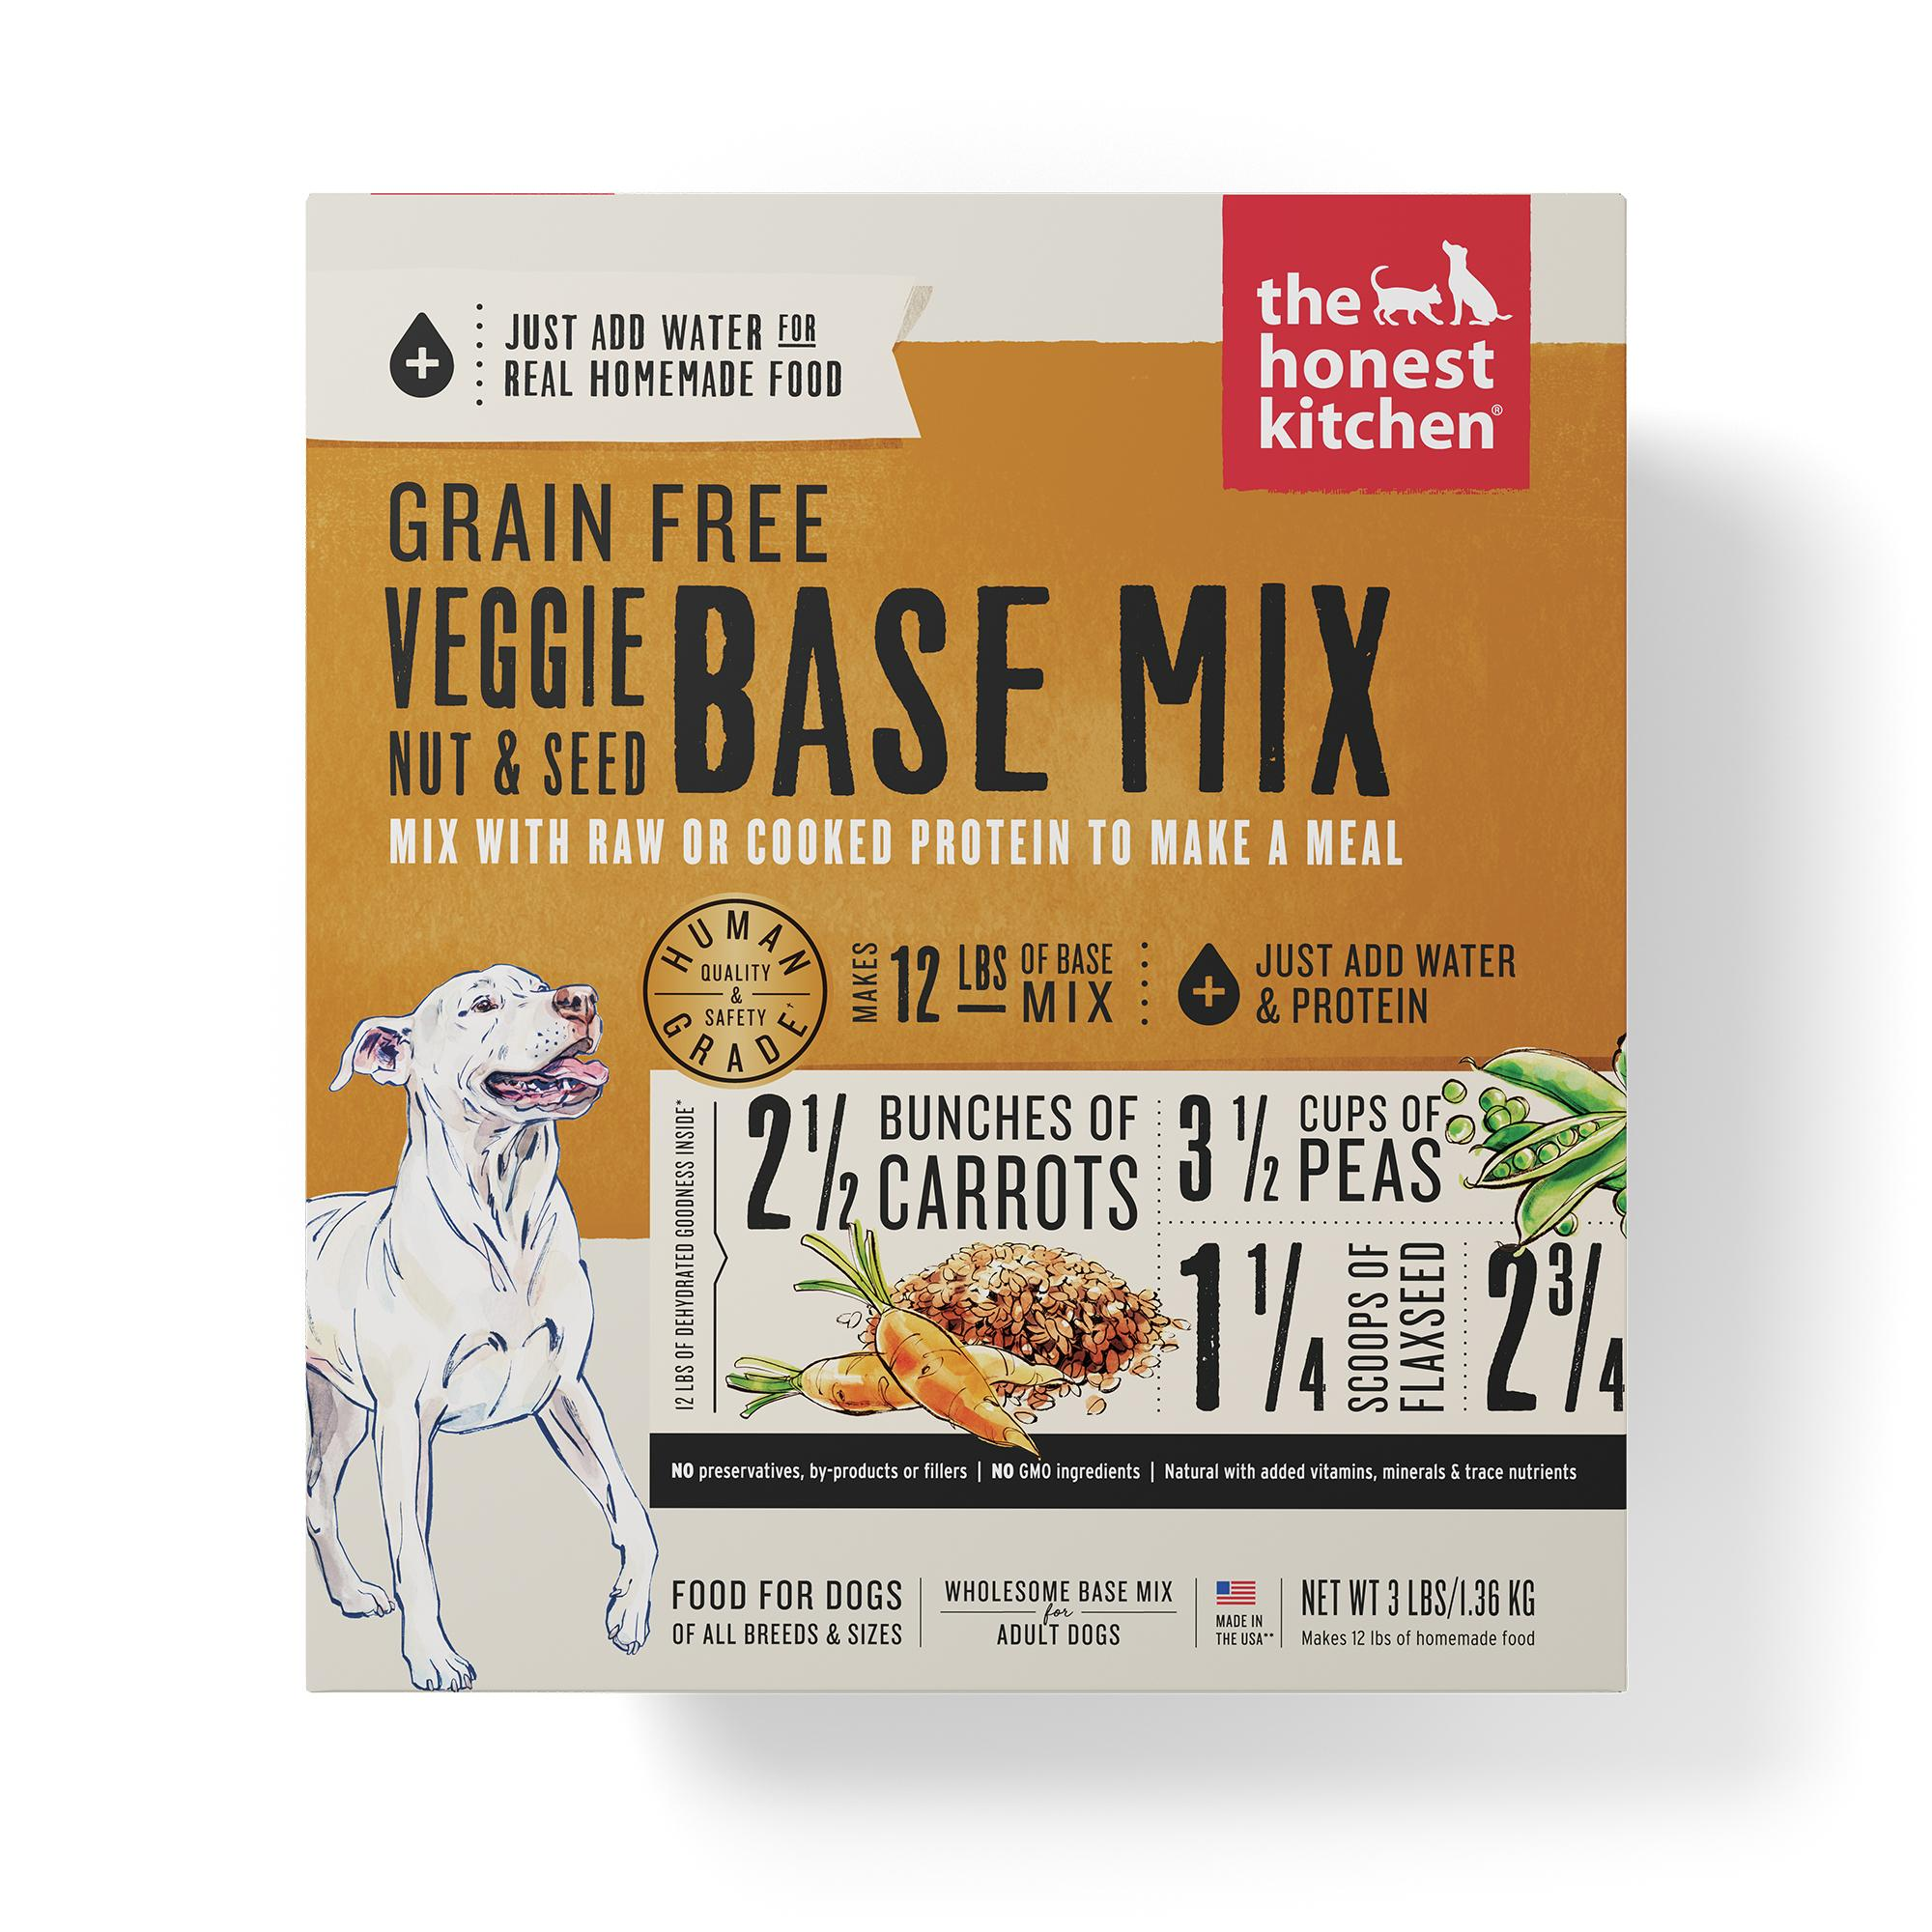 The Honest Kitchen Veggie, Nut & Seed Base Mix Grain-Free Dehydrated Dog Food, 3-lb box